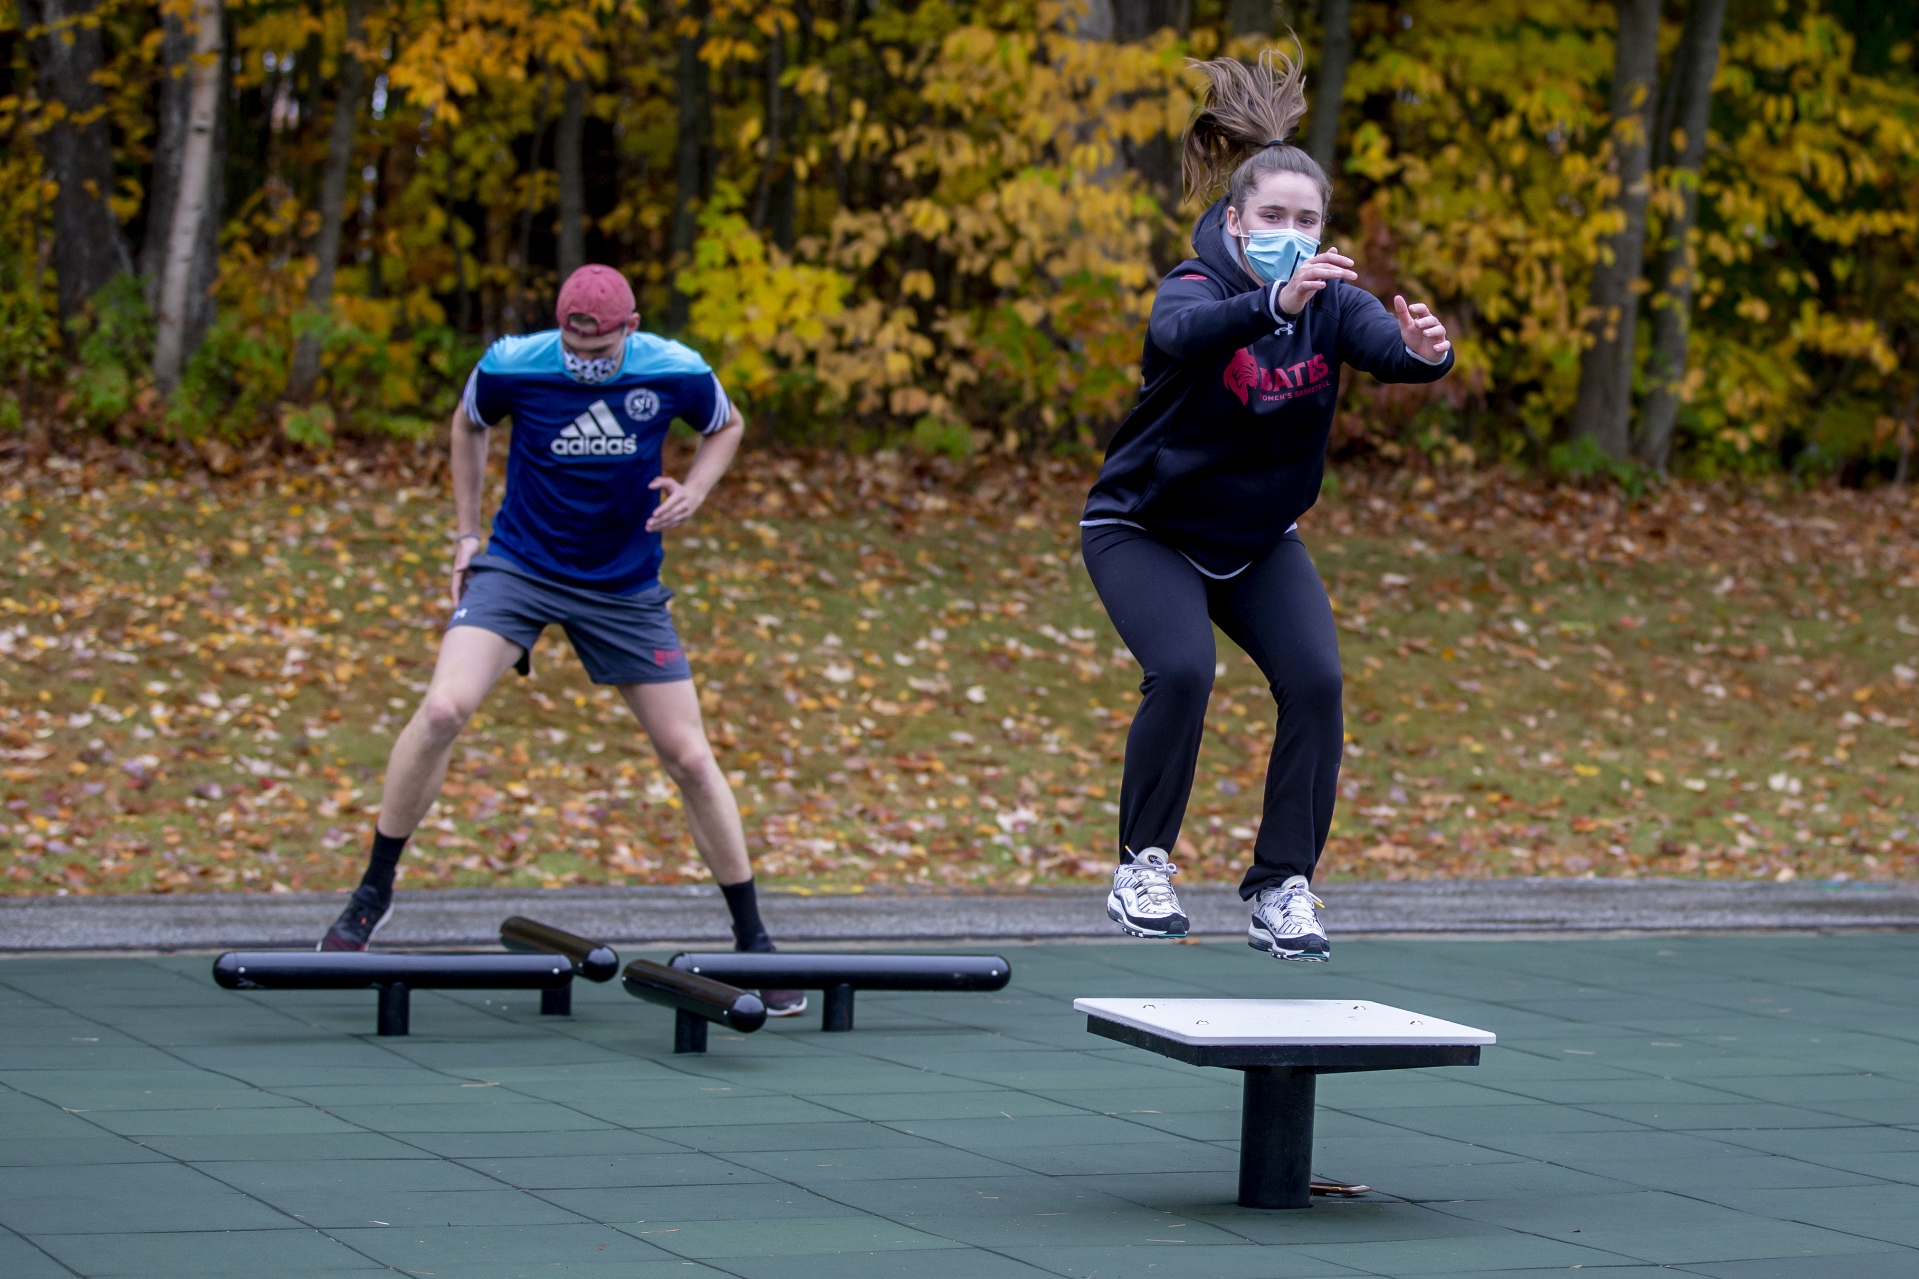 The joint is jumping: During Oct. 21 workouts at Bates' new fitness park, Freddy Hohmann '22 of Bonn, Germany, uses the log hop while Julia Middlebrook '21 of Ridgefield, Conn., springs onto a plyometric step. (Phyllis Graber Jensen/Bates College)